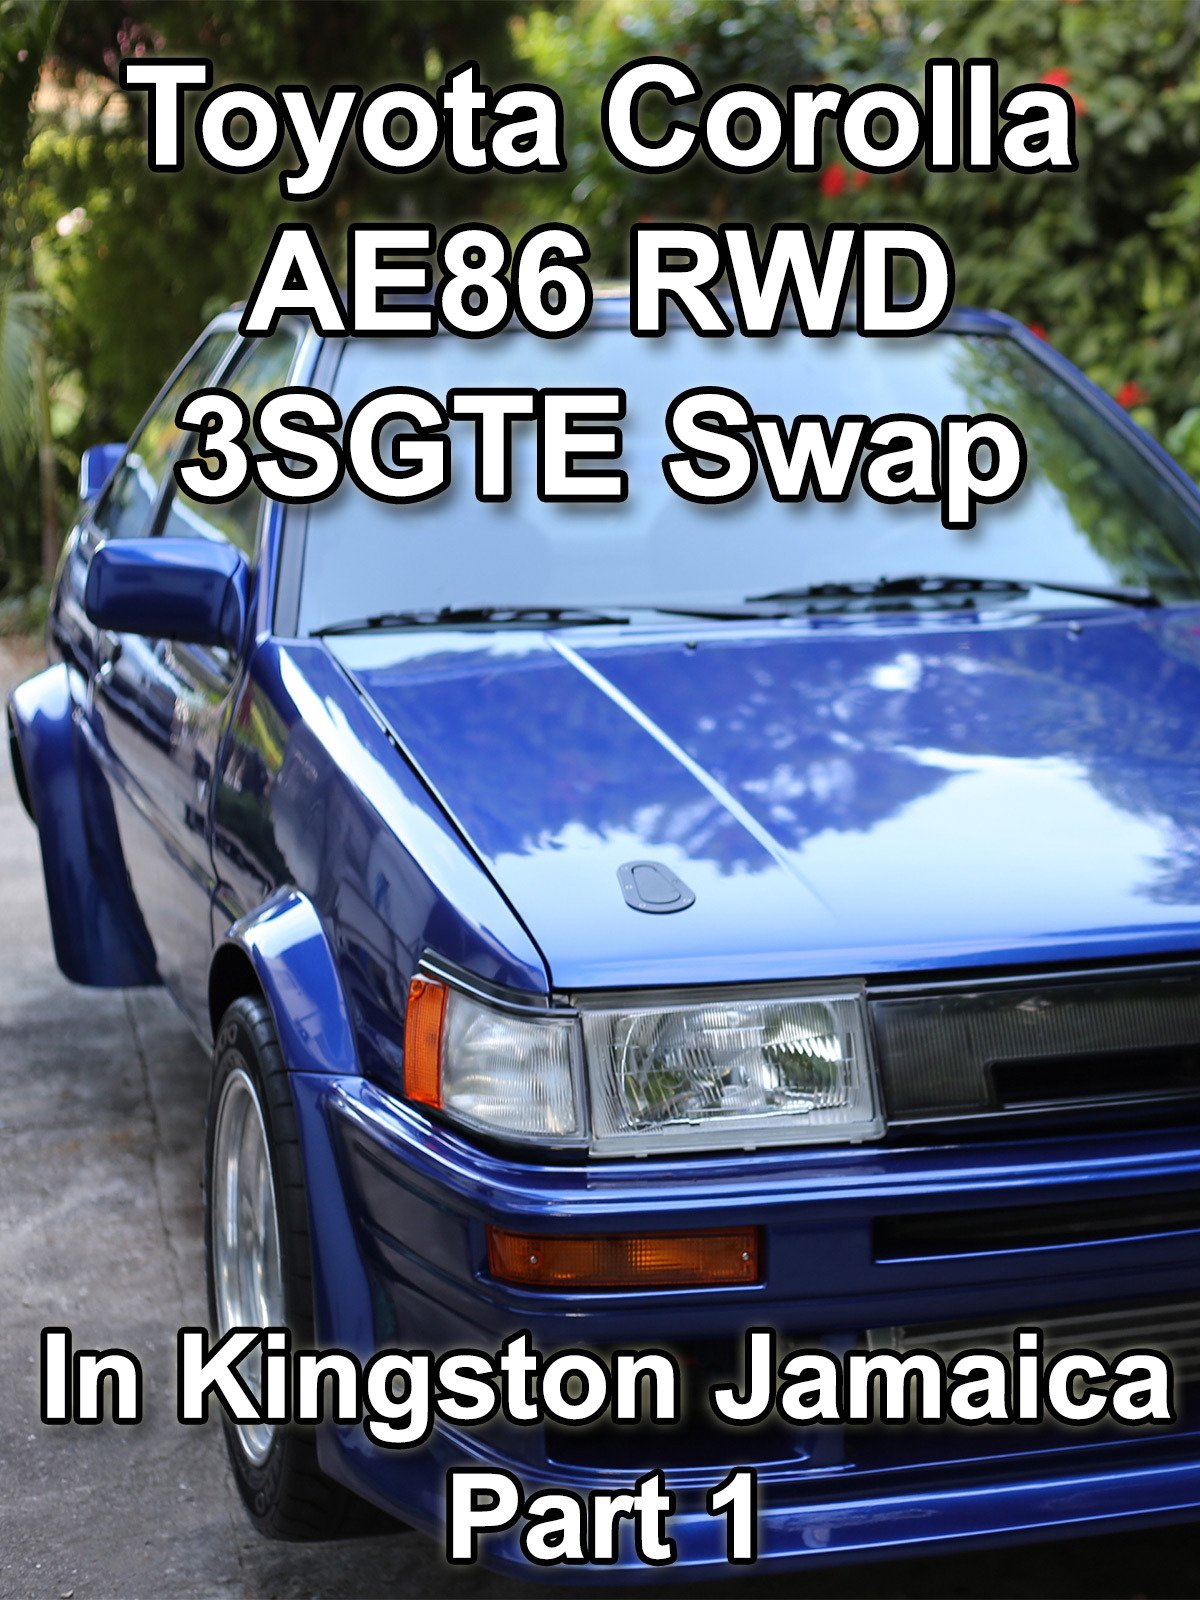 Review: Toyota Corolla AE86 RWD 3SGTE Swap in Kingston Jamaica Part 1 on Amazon Prime Video UK